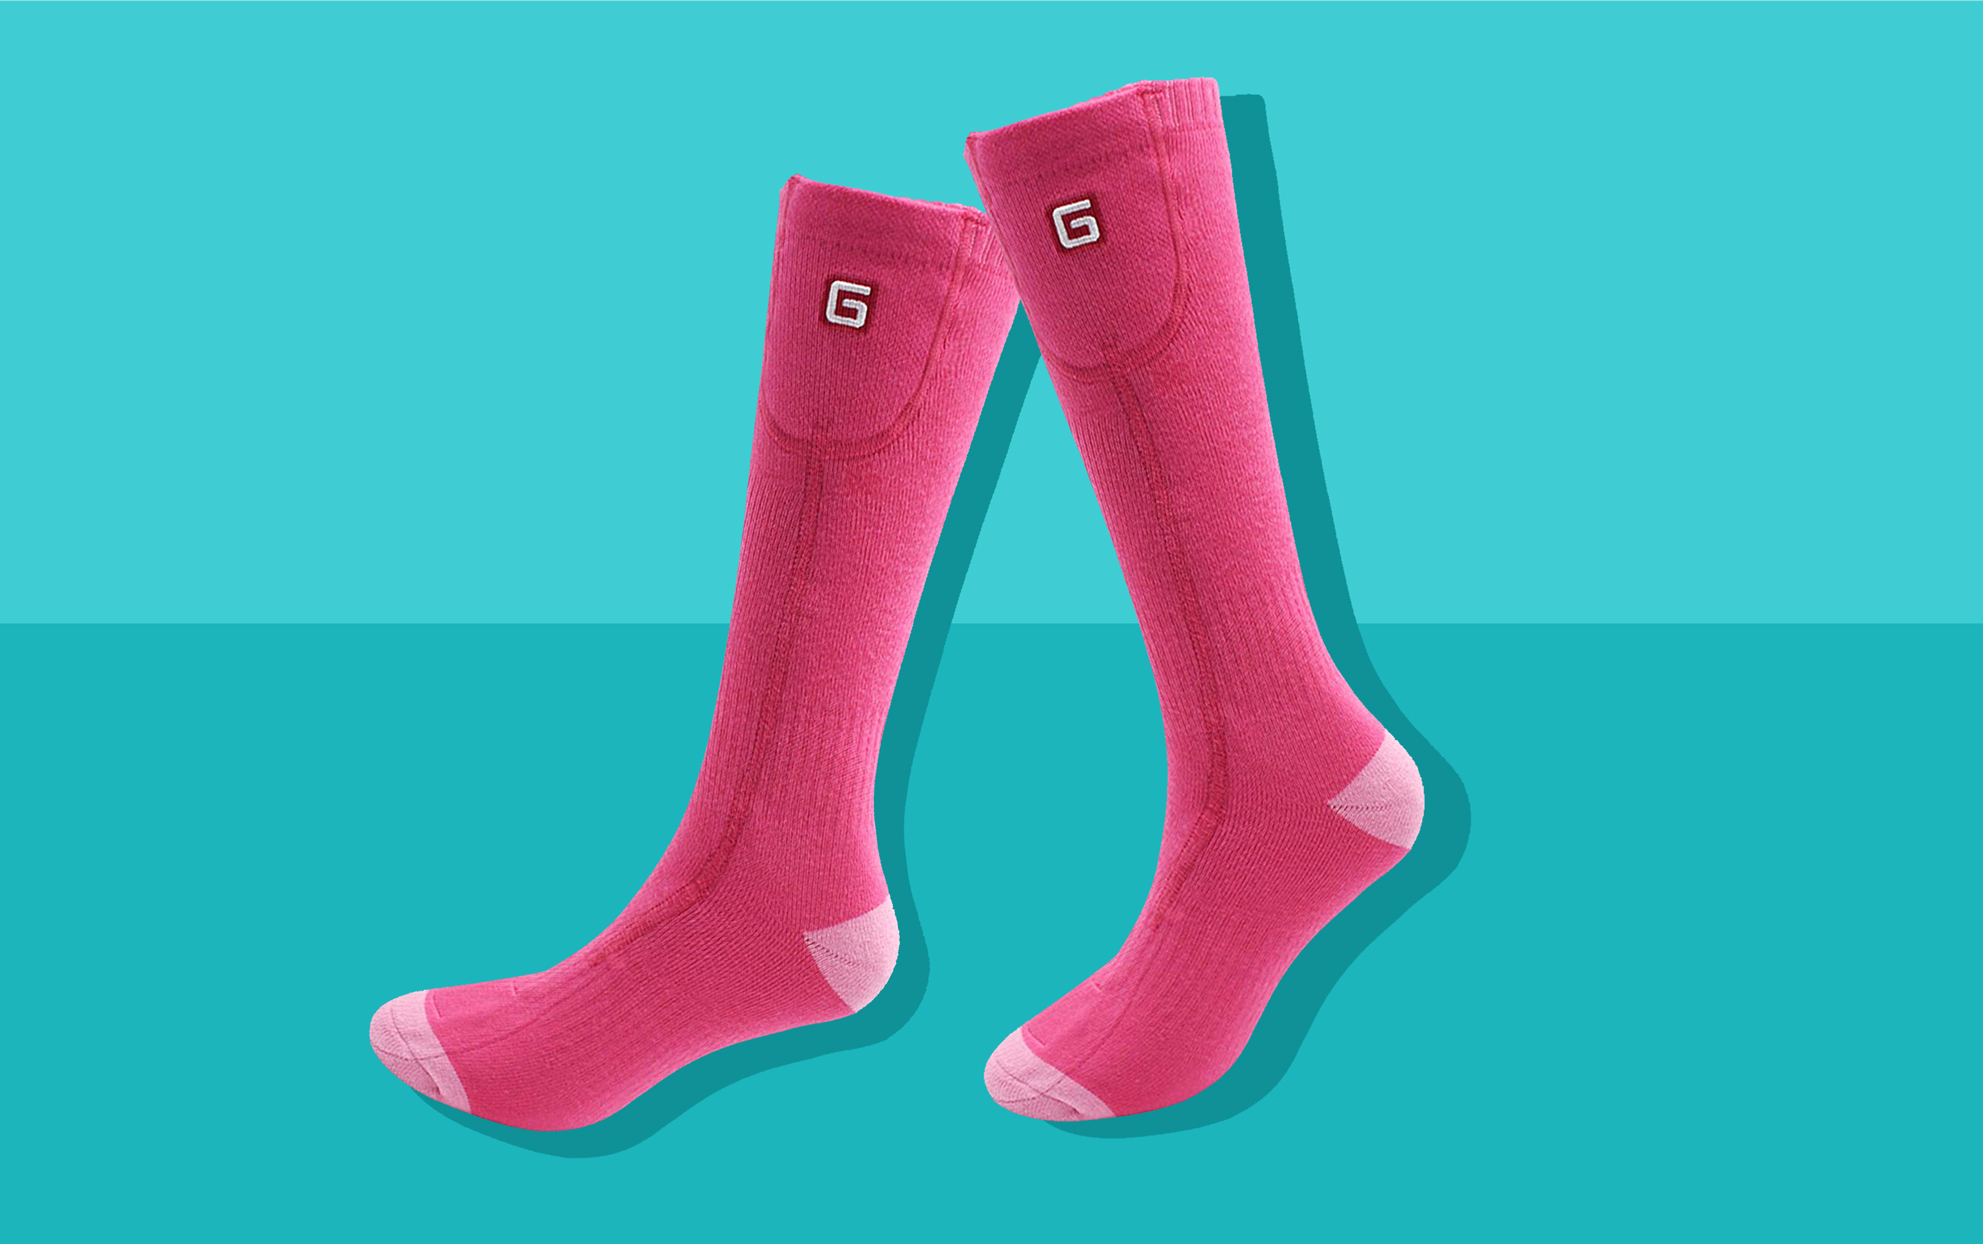 two pink heated socks on a teal background